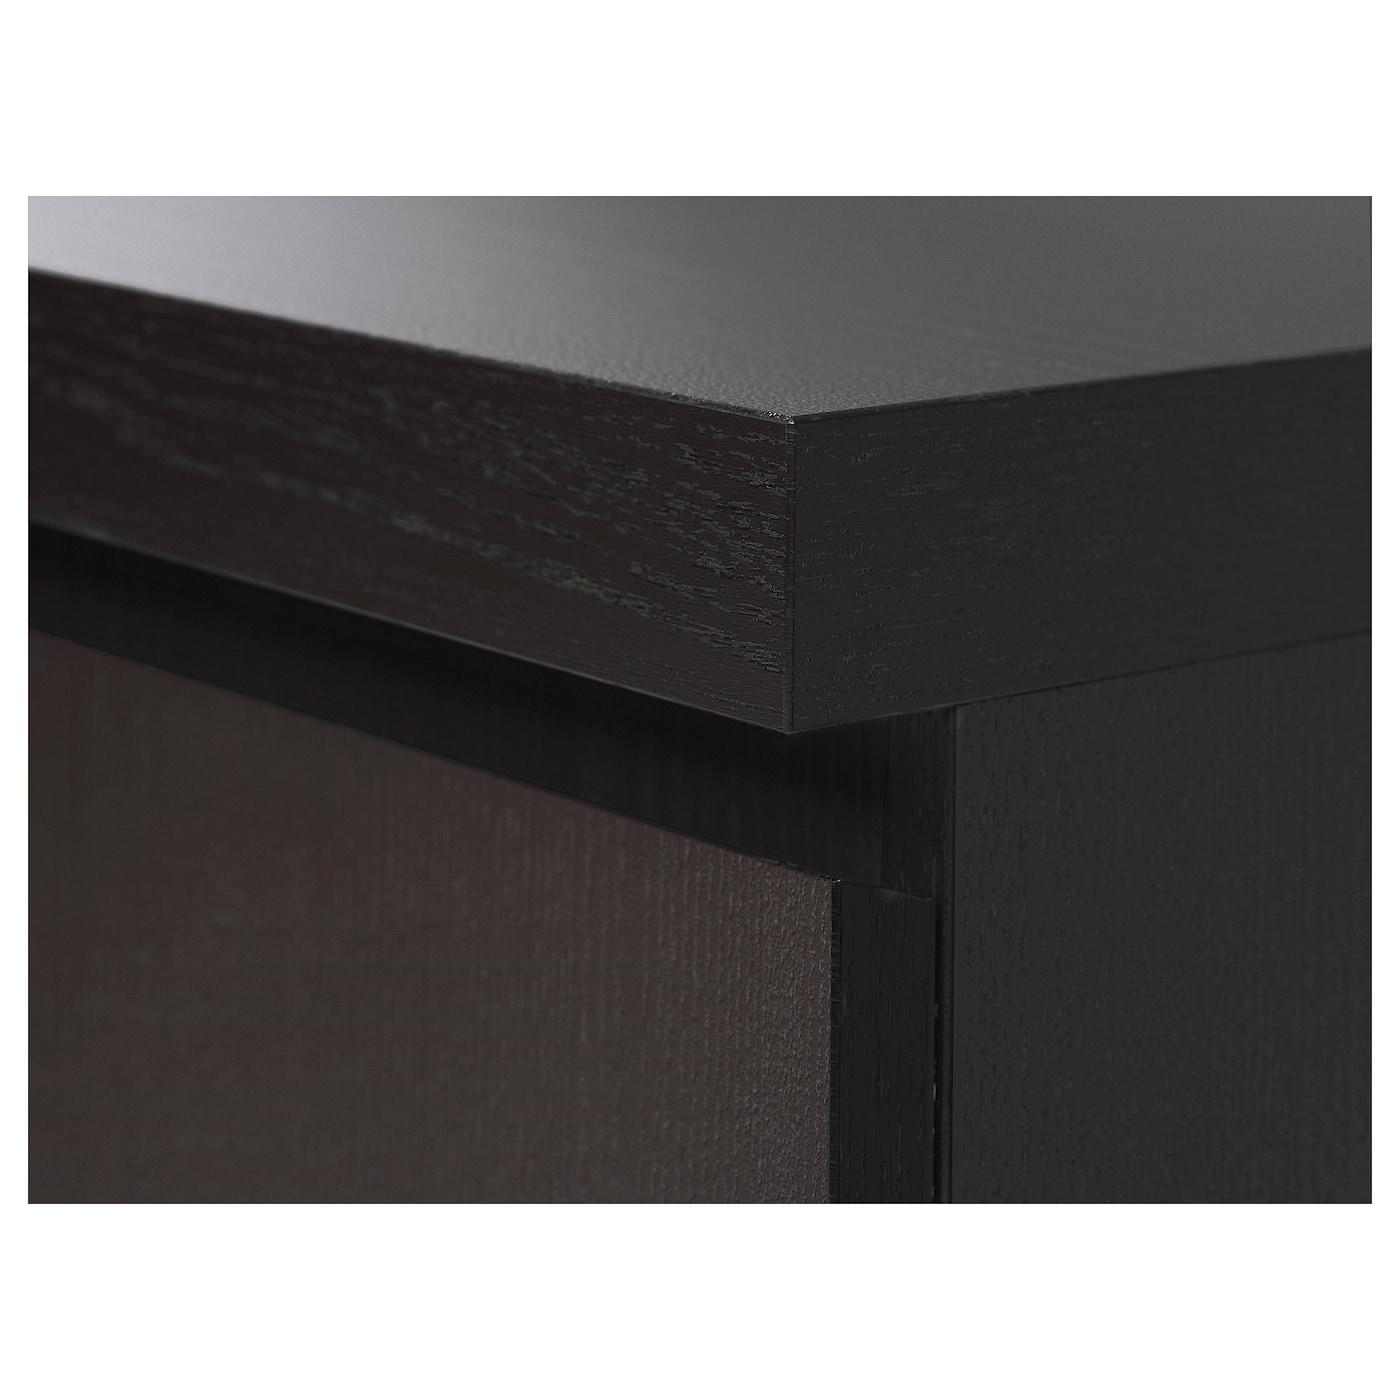 malm bureau brun noir 140x65 cm ikea. Black Bedroom Furniture Sets. Home Design Ideas